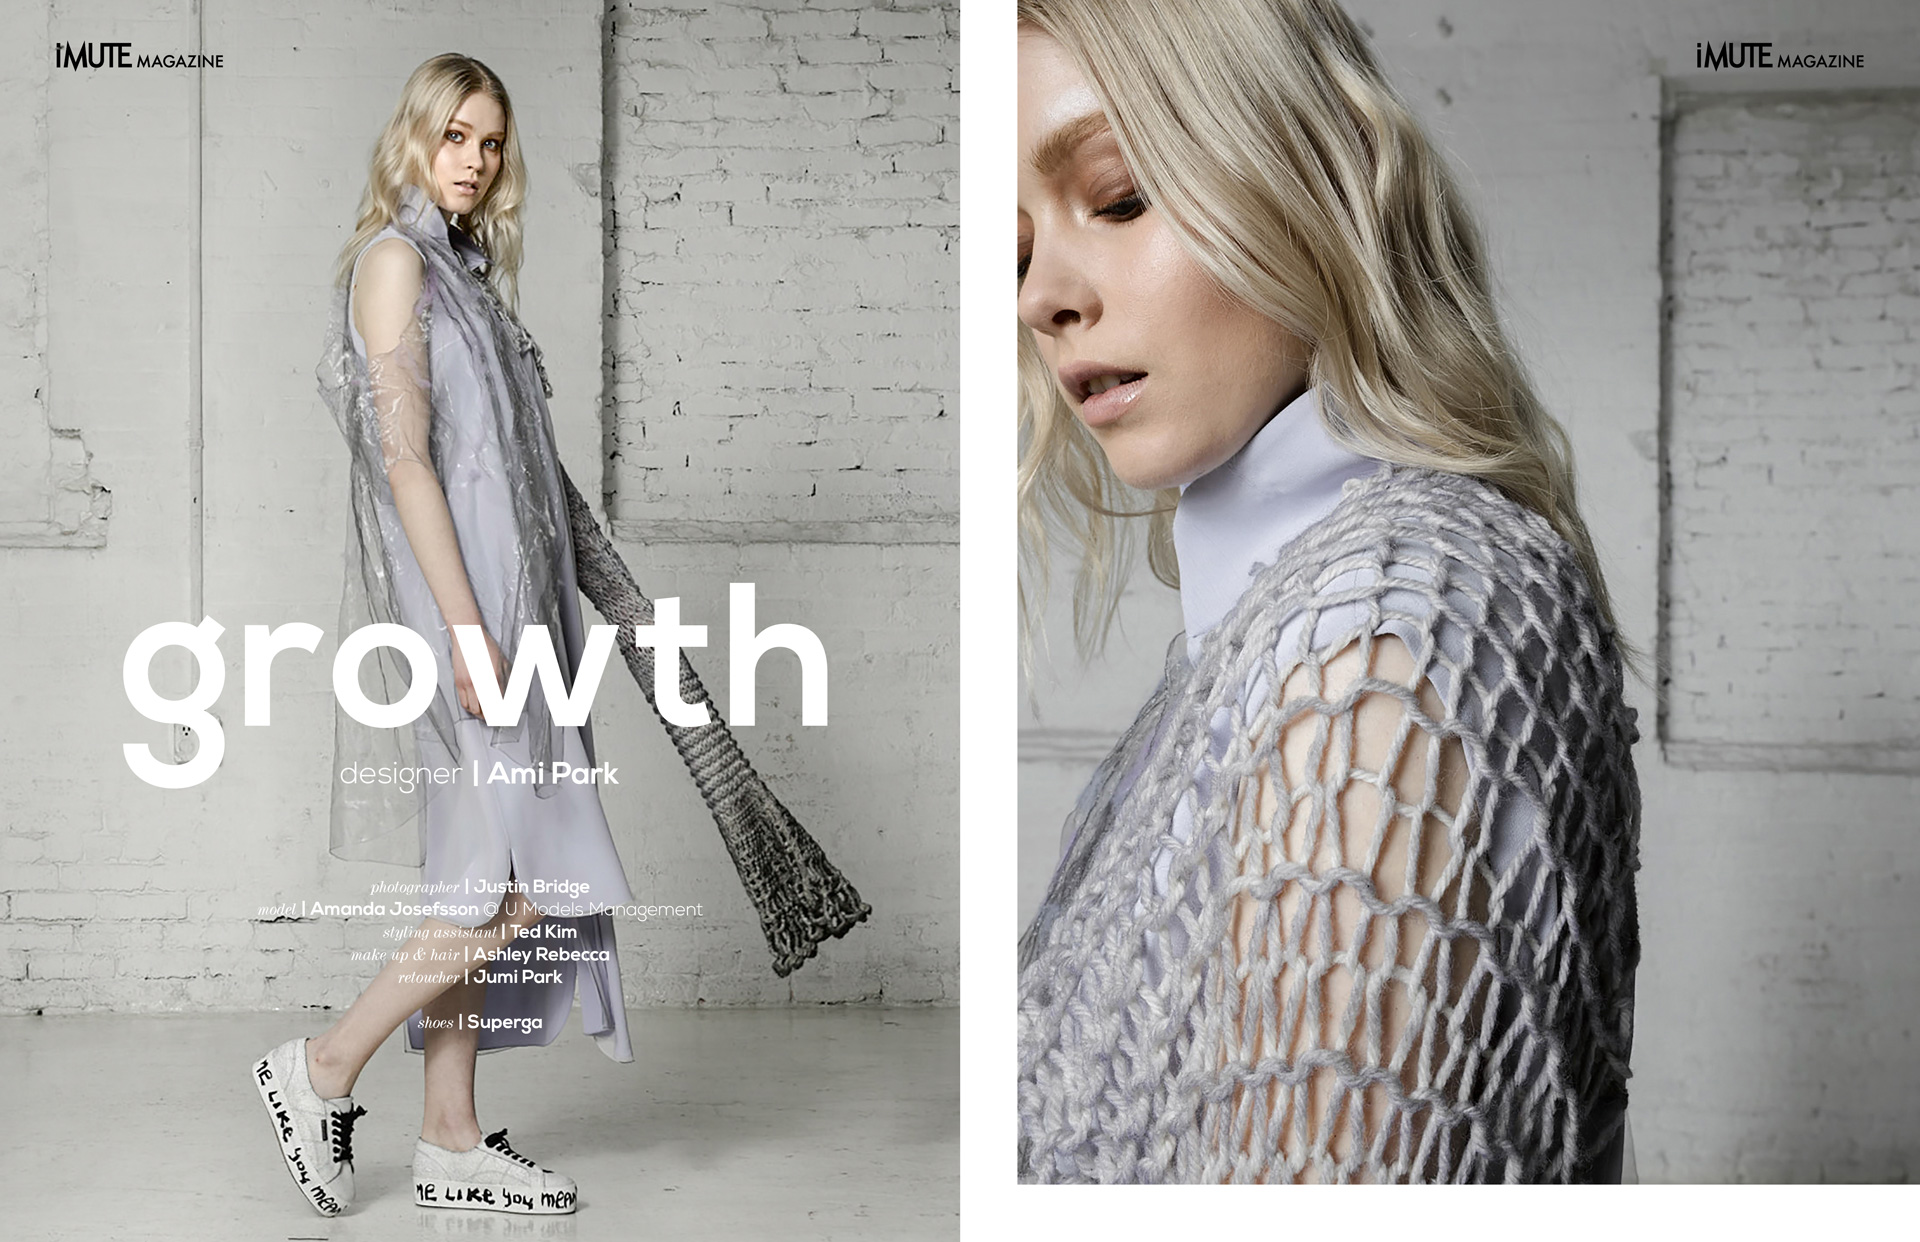 growth advertorial for iMute Magazine Designer | Ami Park Photographer | Justin Bridge Model | Amanda Josefsson @ U Models Management Styling Assistant | Ted Kim Make up & Hair | Ashley Rebecca Retoucher | Jumi Park